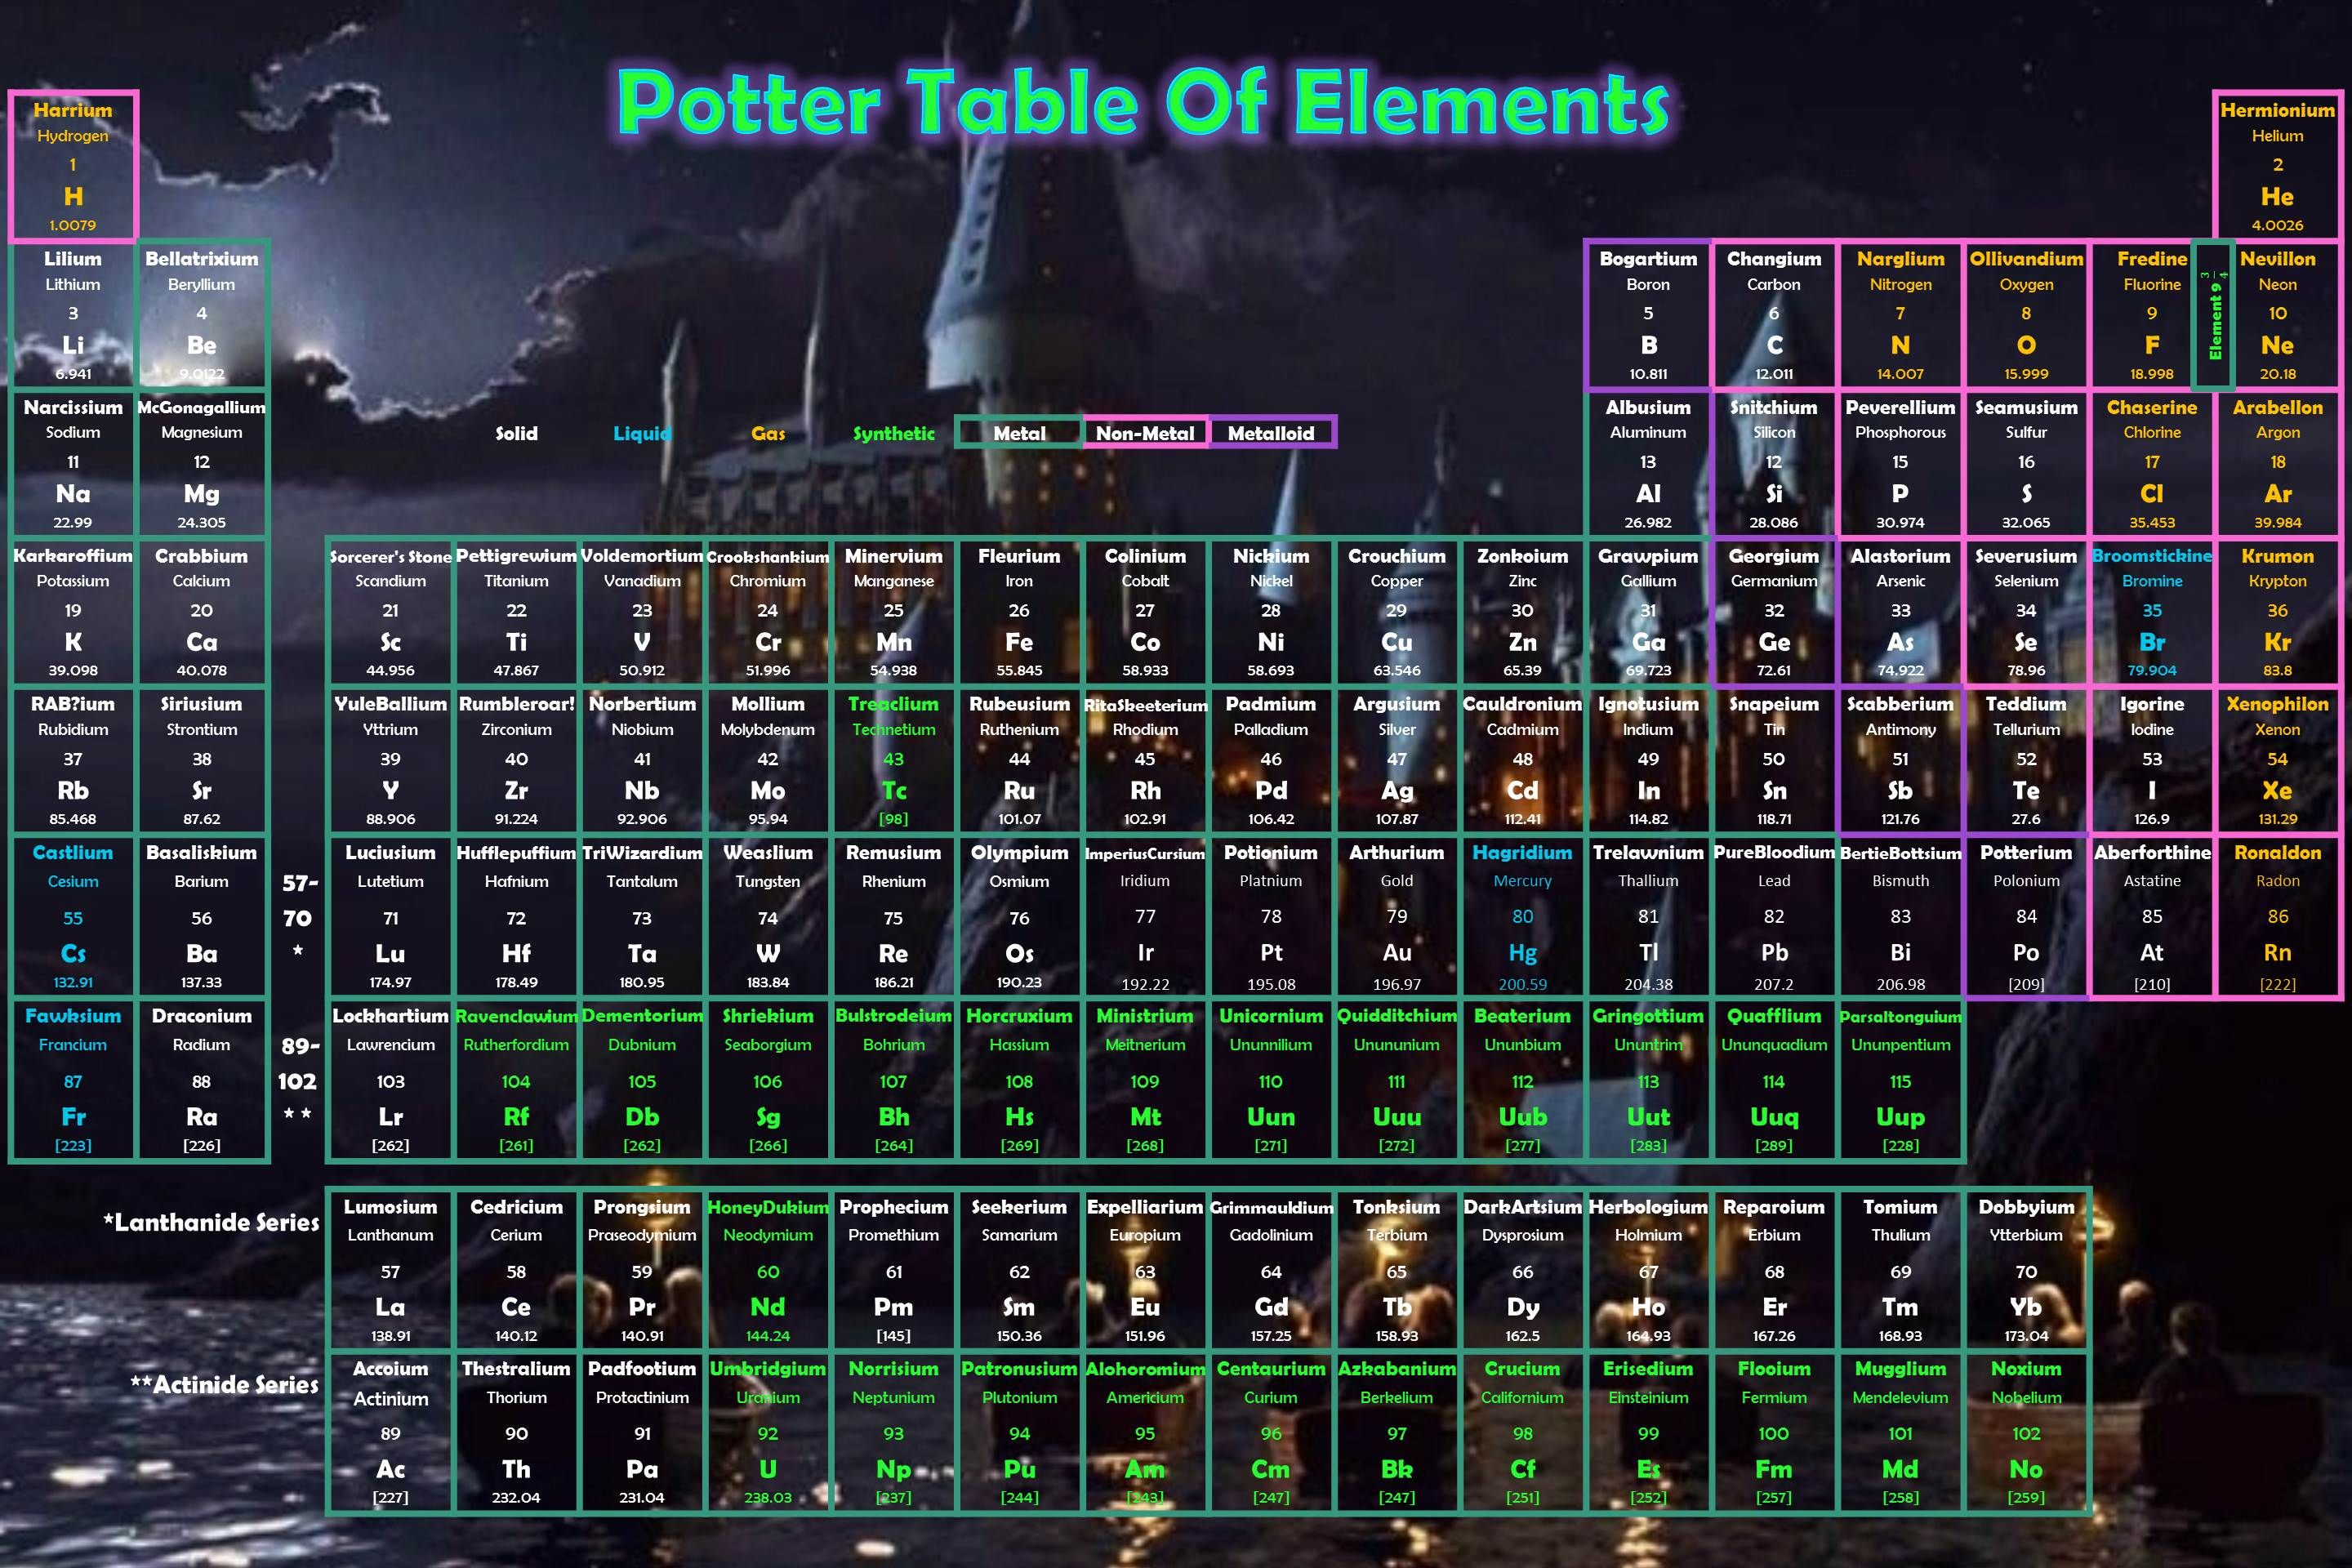 Harry Potter Periodic Table Harrypotter Periodictable Chemistry Harry Potter Memes Potter Harry